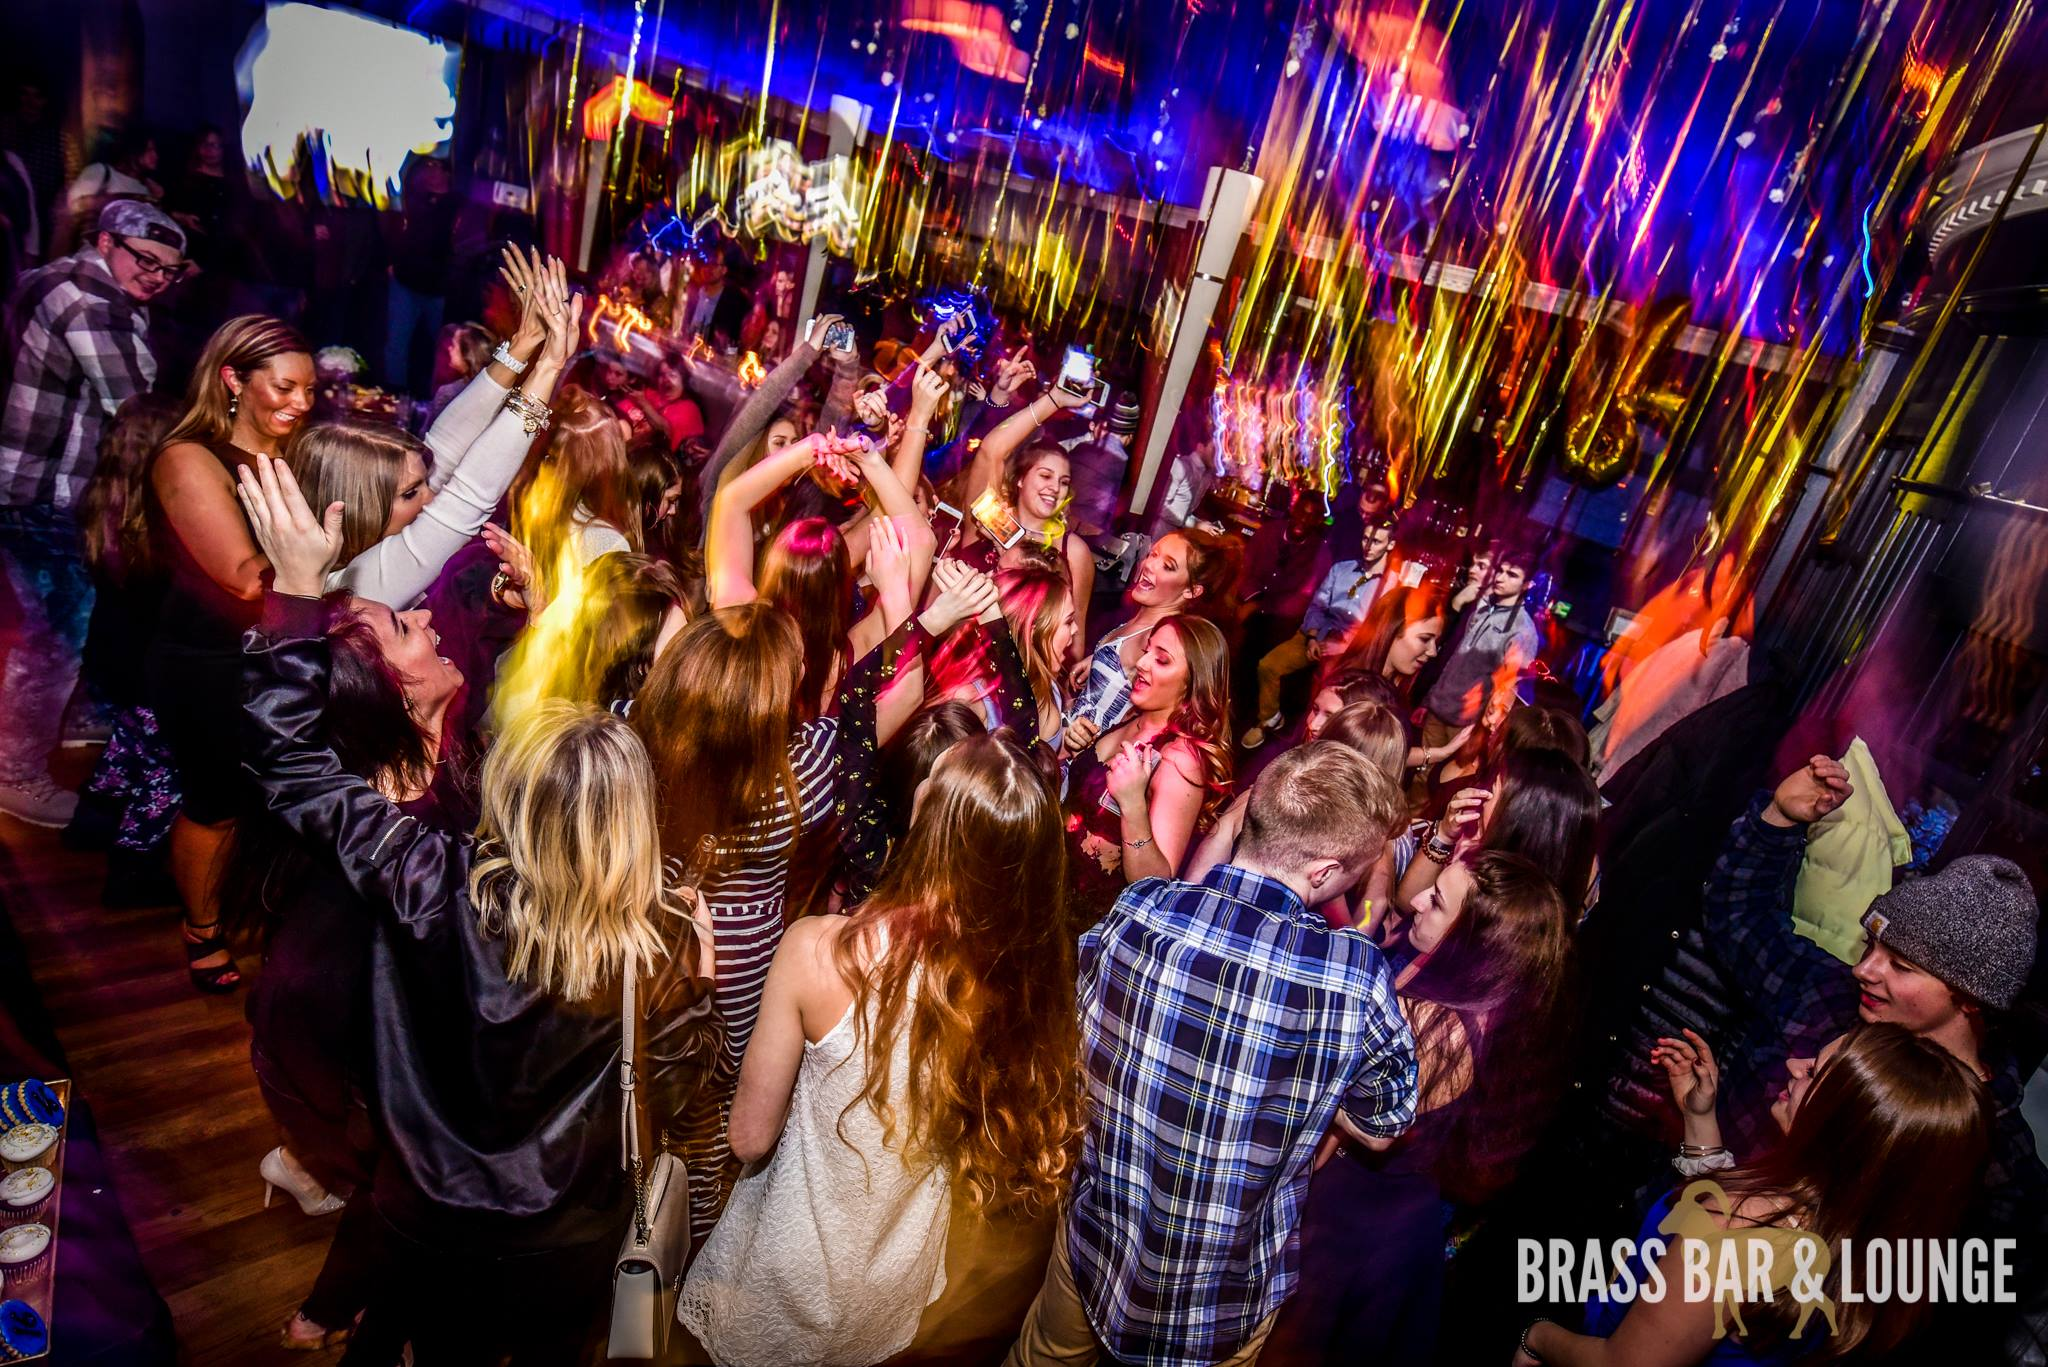 A group of people dancing with gold balloons in the background.